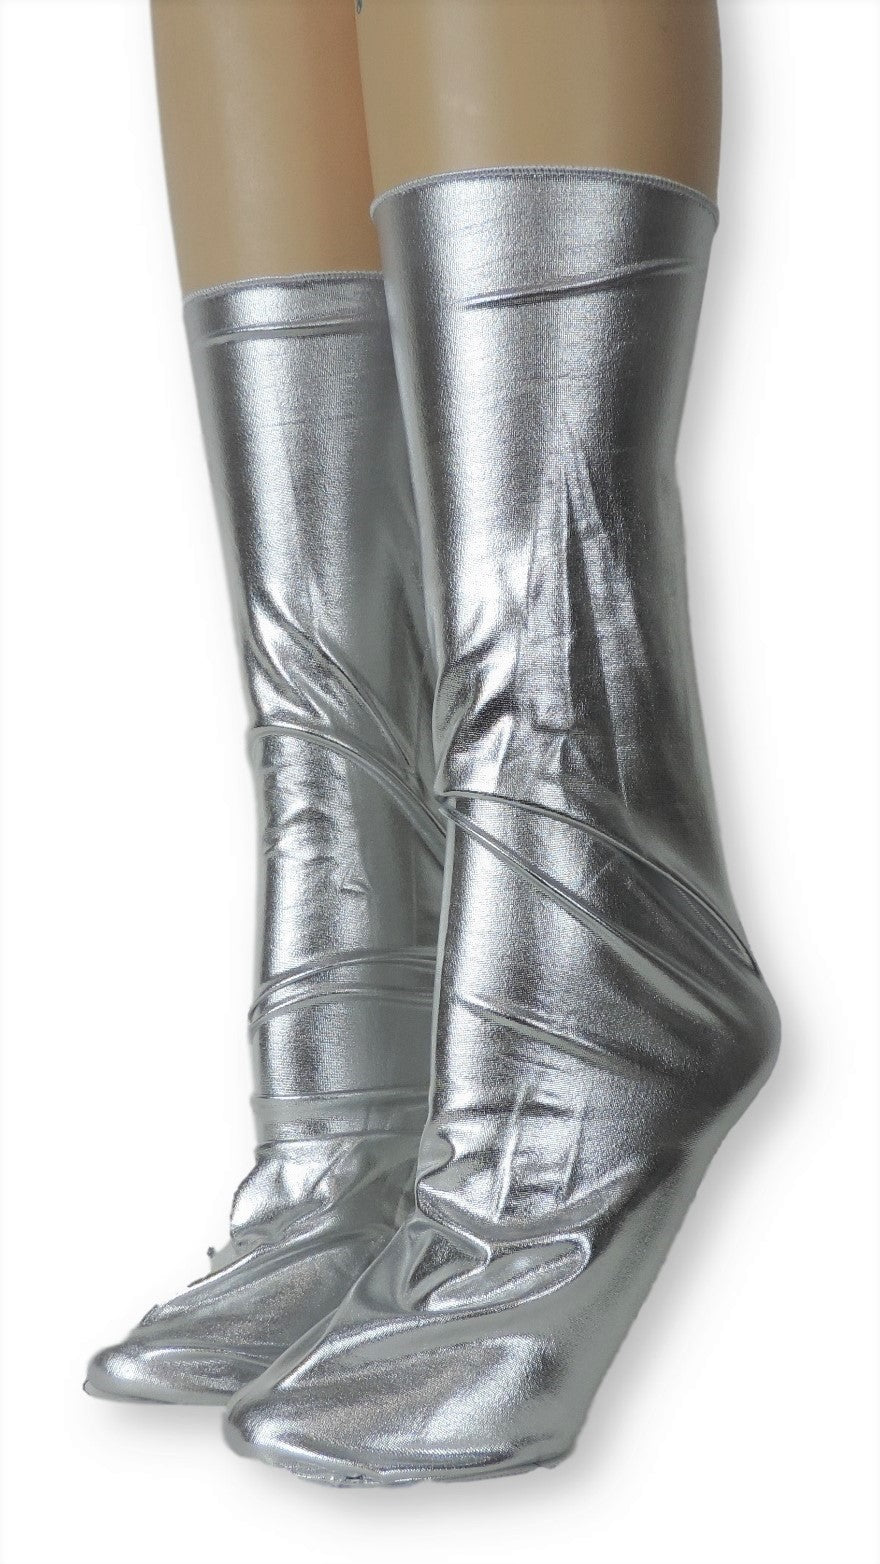 Metallic Silver Reflective Socks